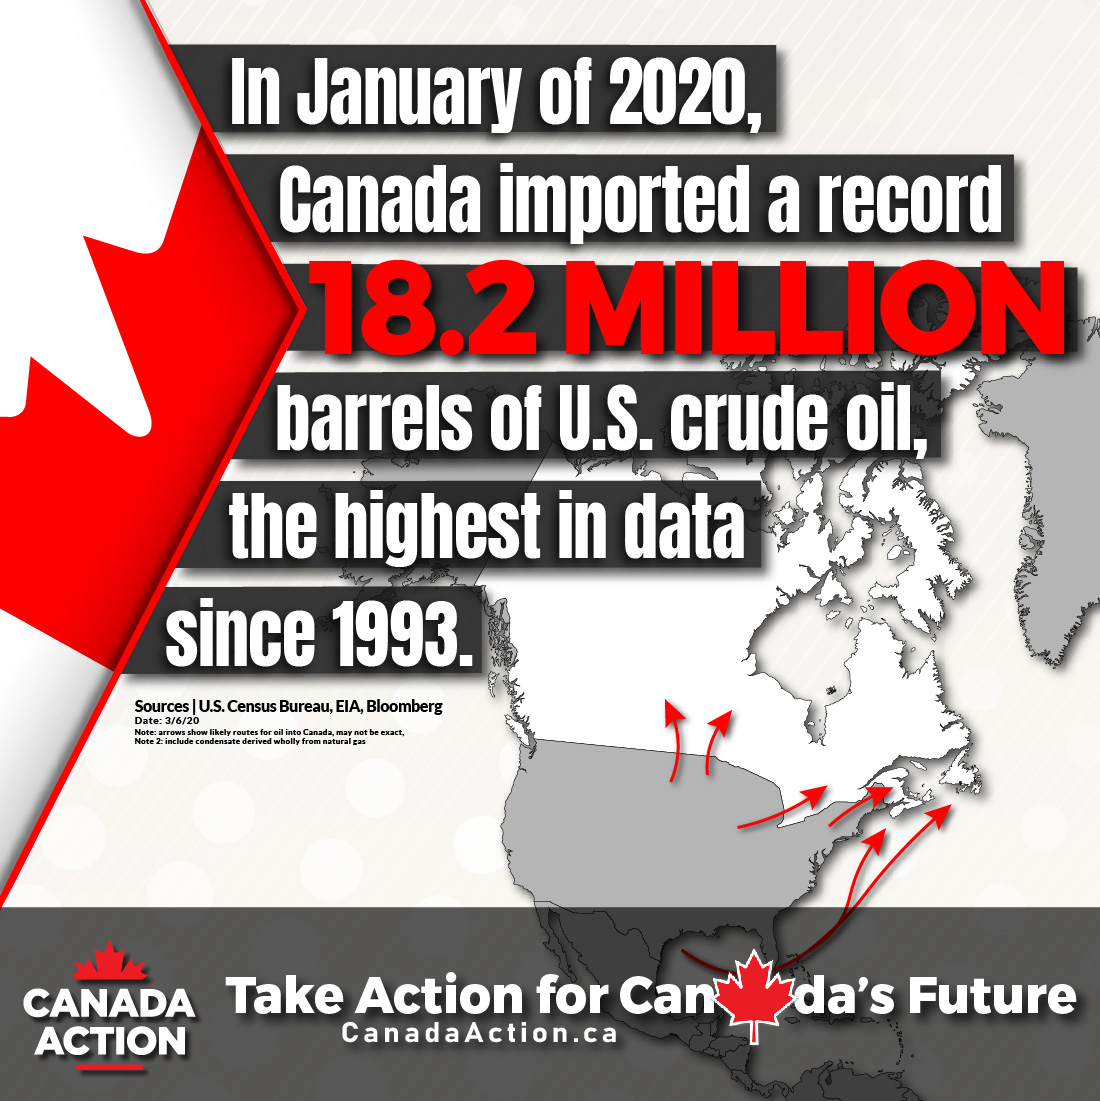 How much US oil does canada import? A record amount in January 2020